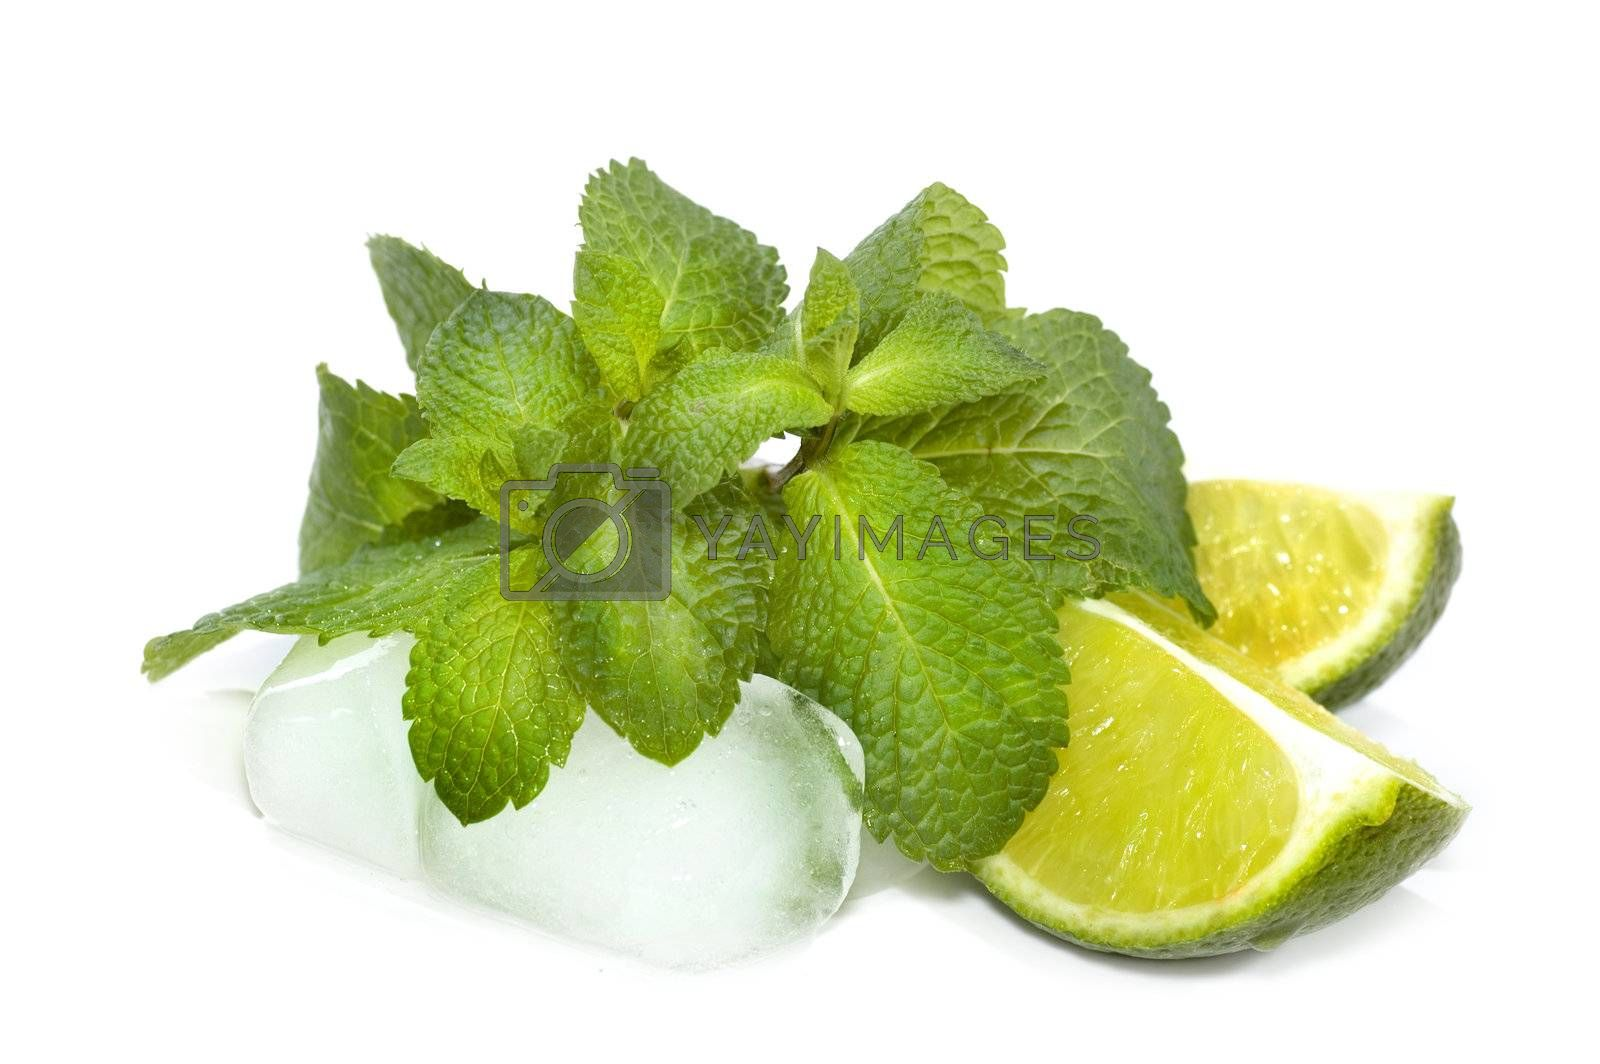 Mojito Ingredients: Mint, Lime & Ice Closeup by Subbotina Anna